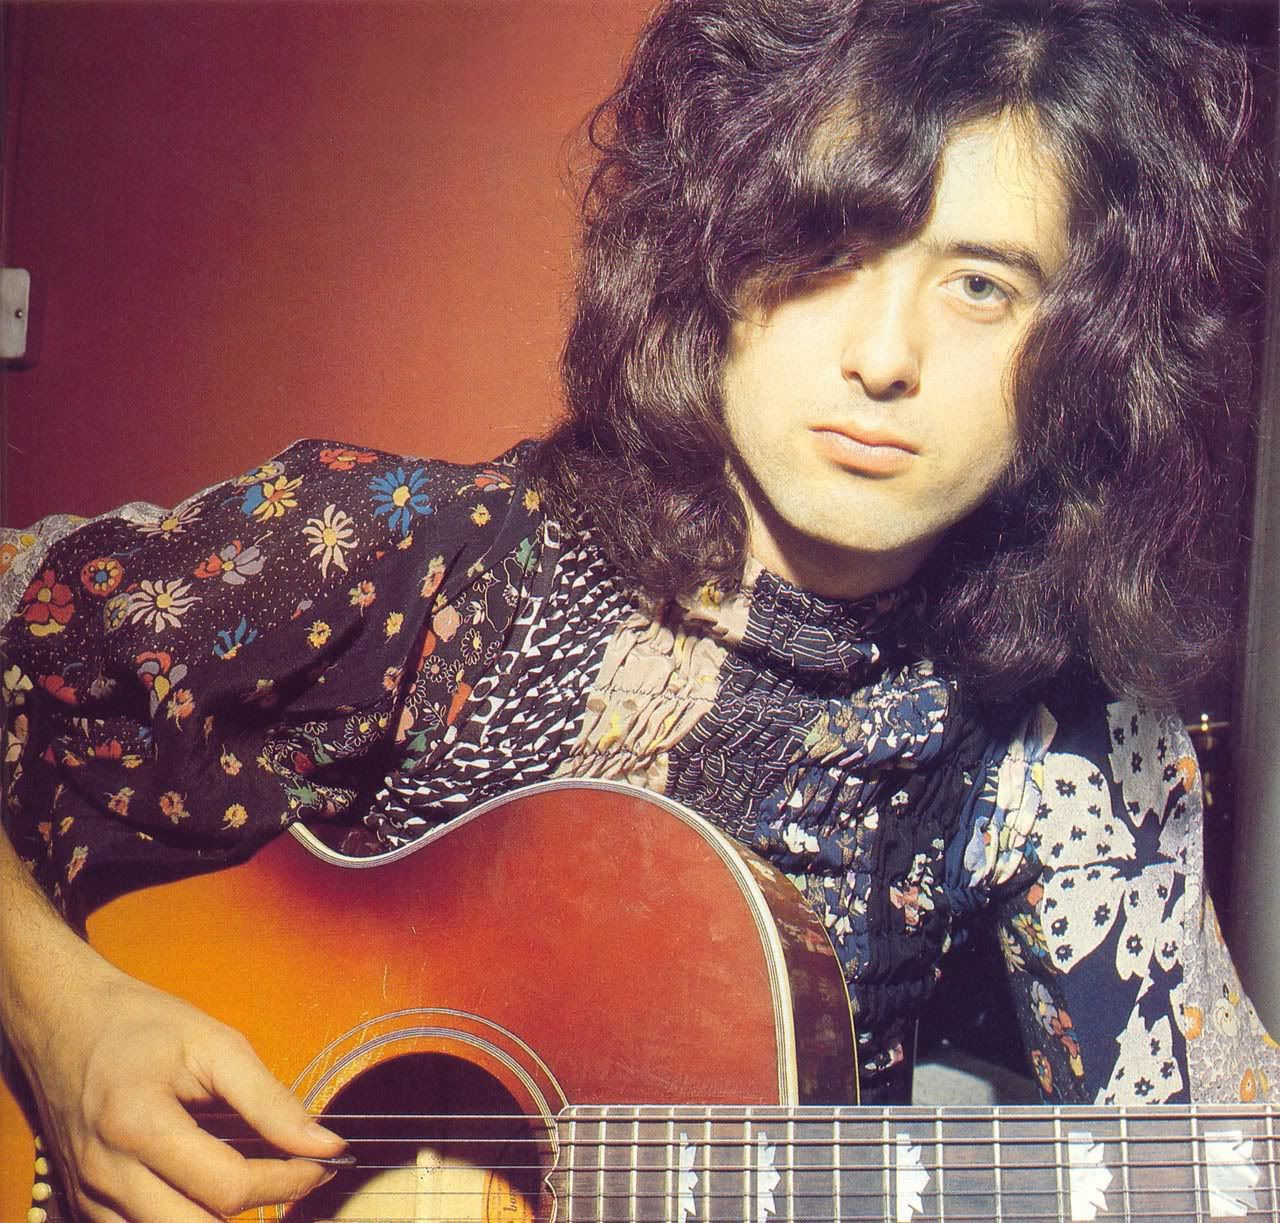 Jimmy Page, 1970 July